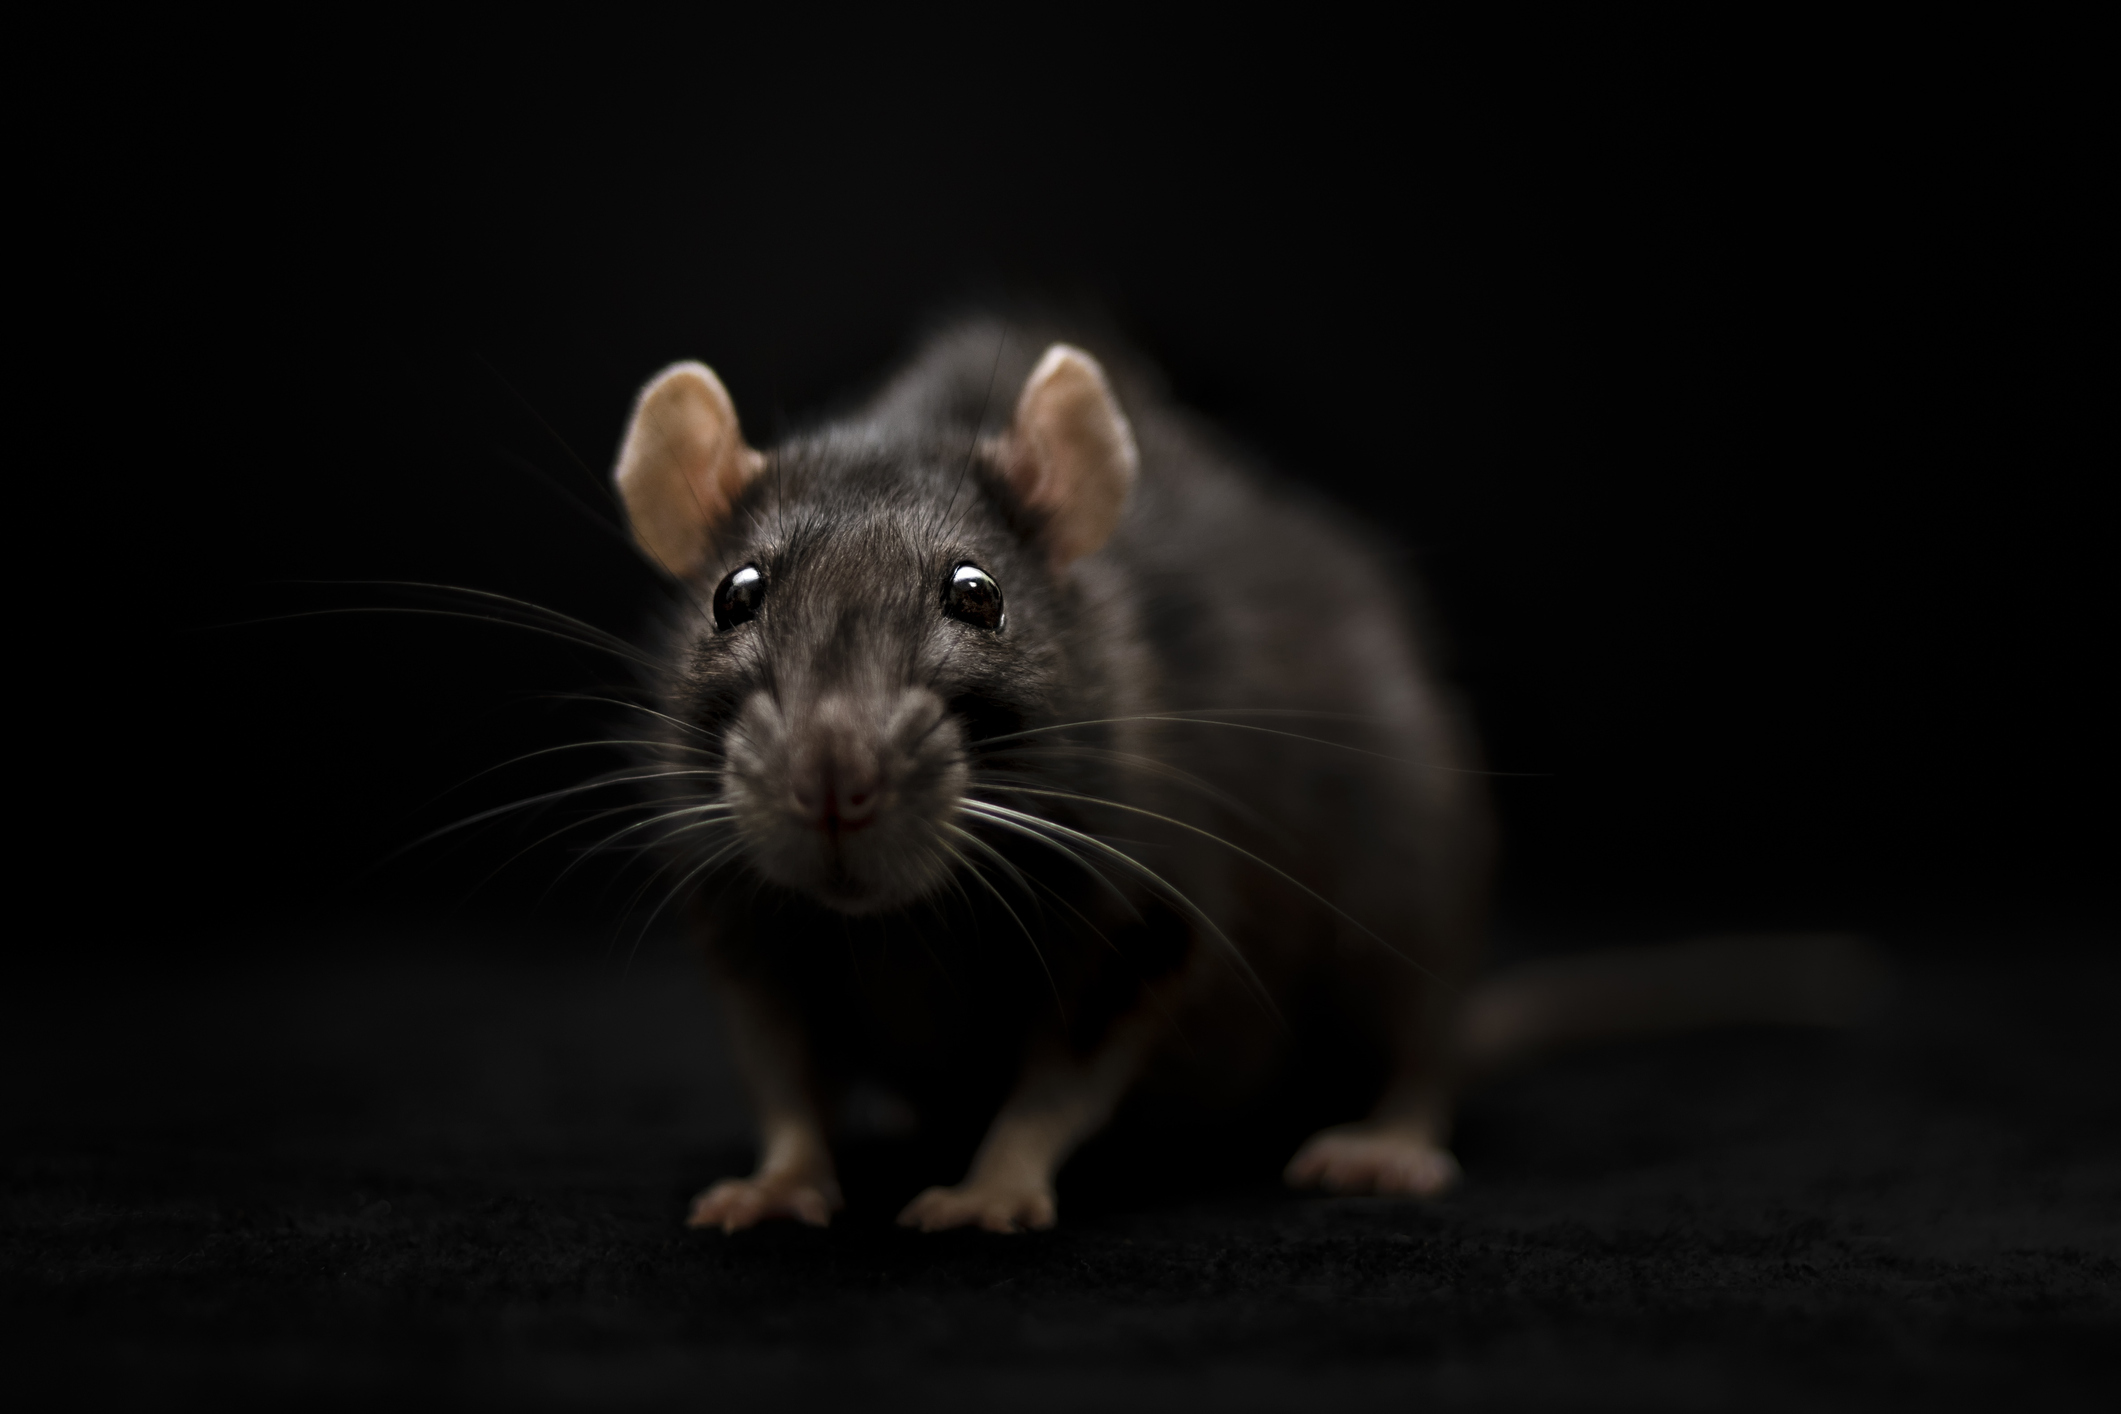 Rodent Control Service Houston Tx